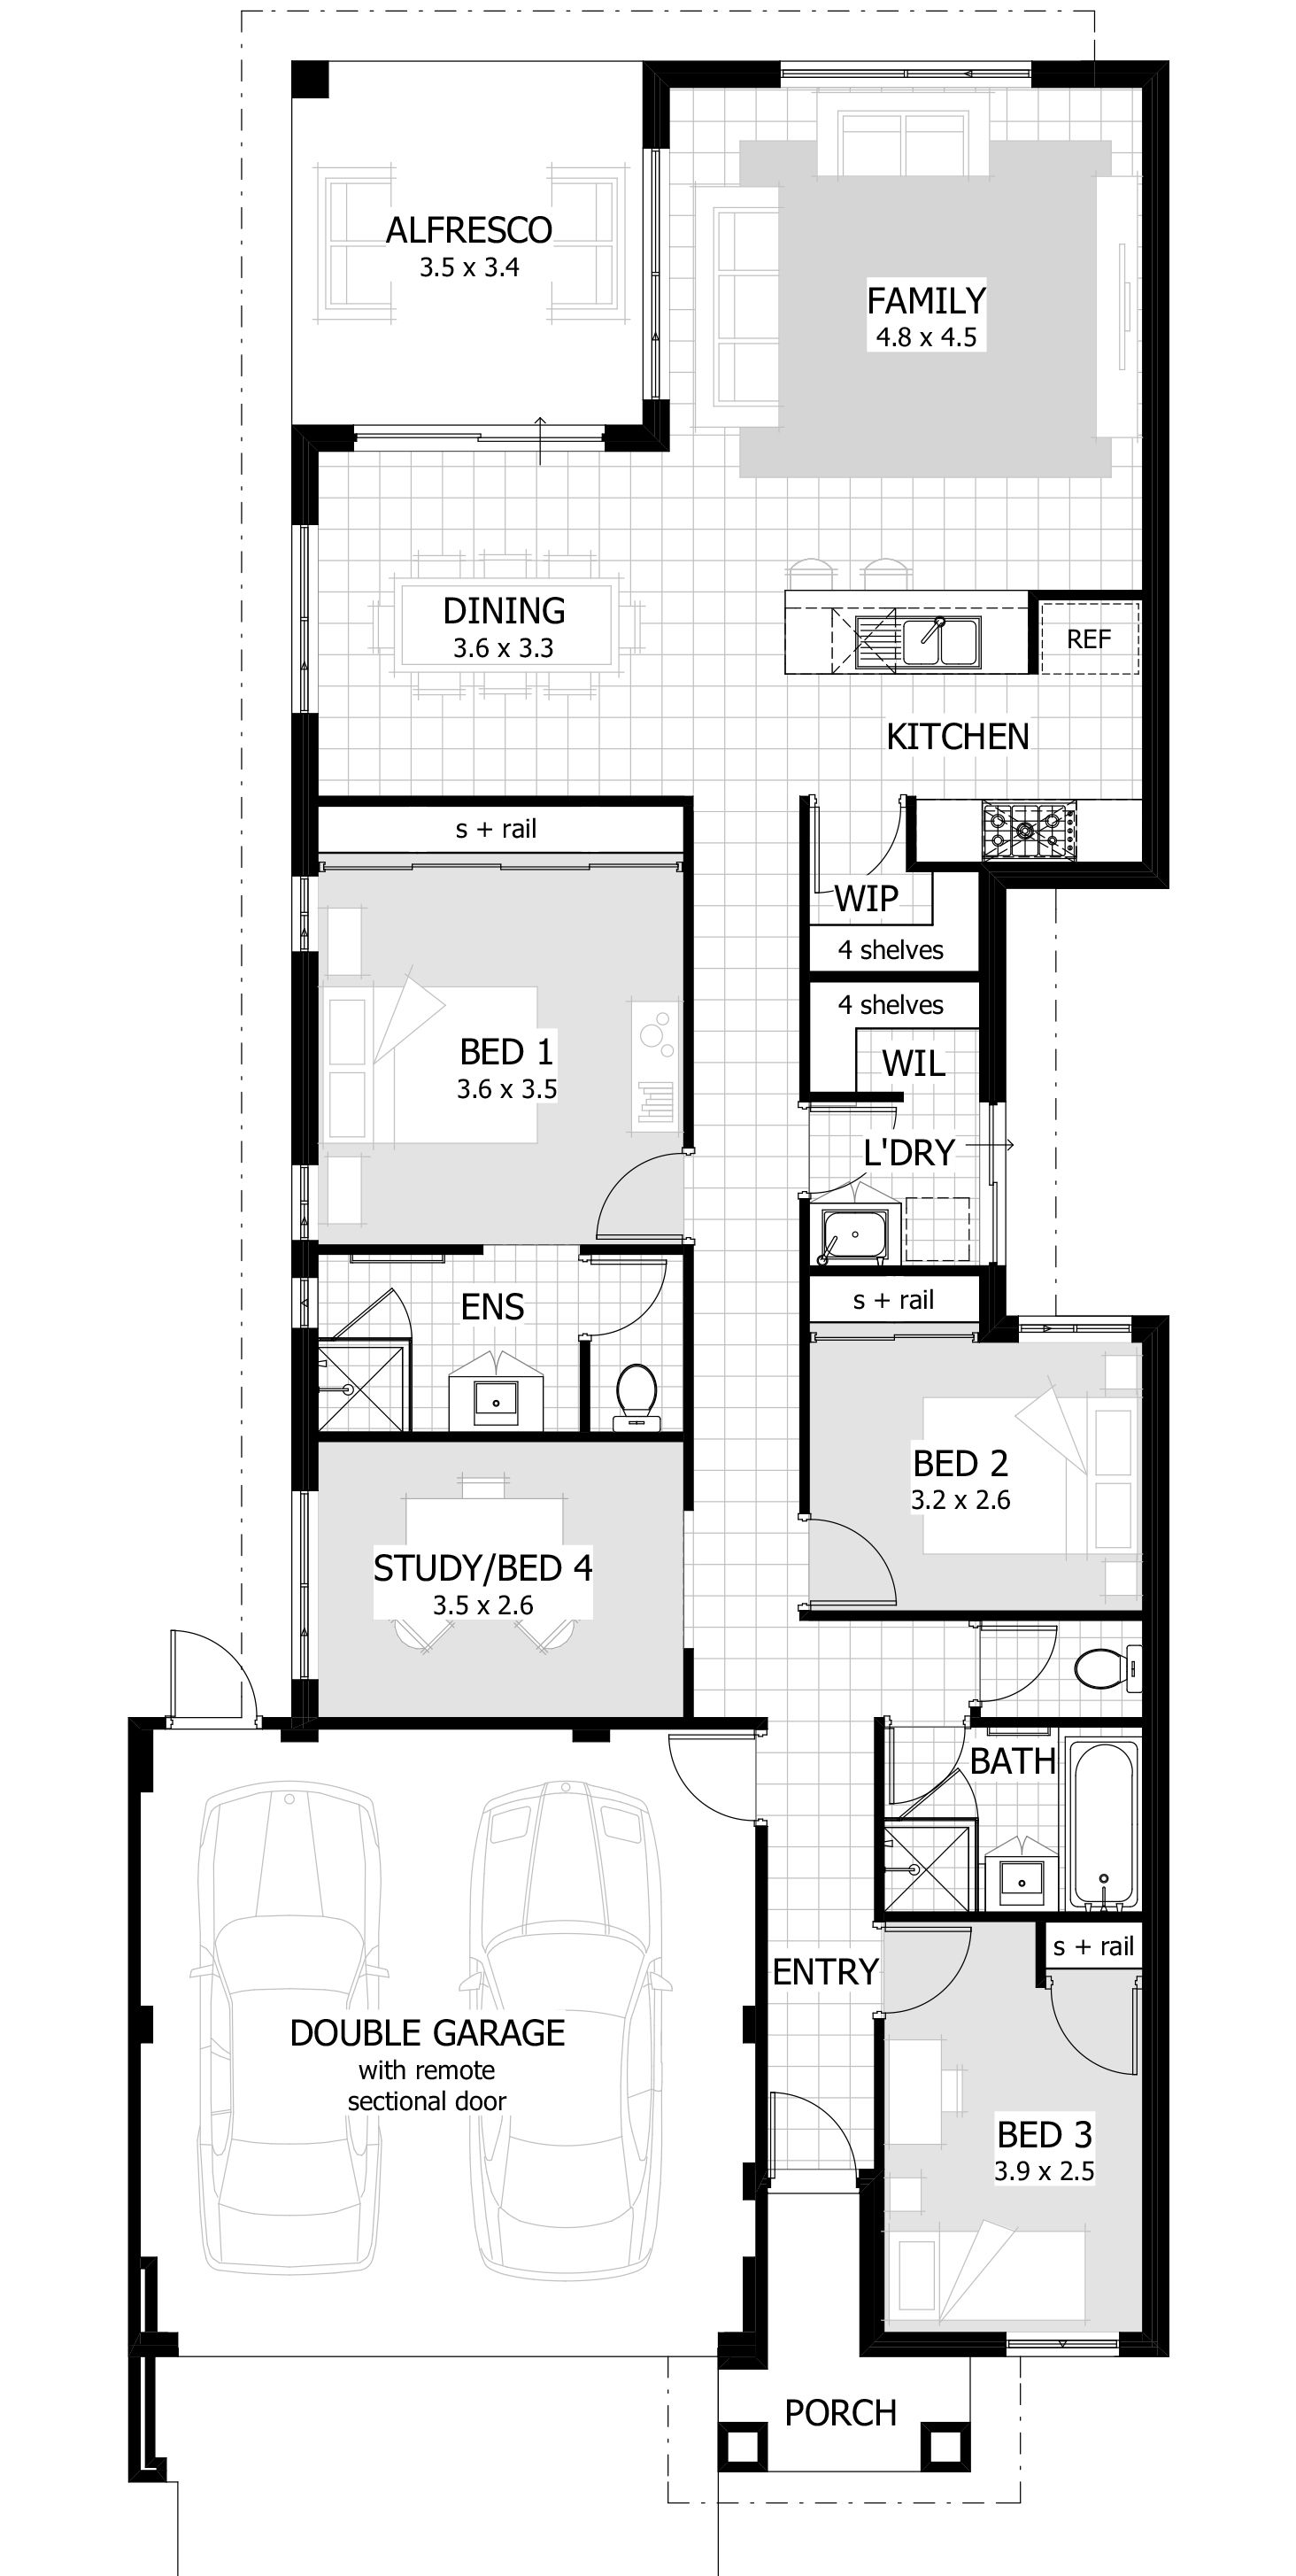 4 bedroom house plans home designs celebration homes - Home Design House Plans